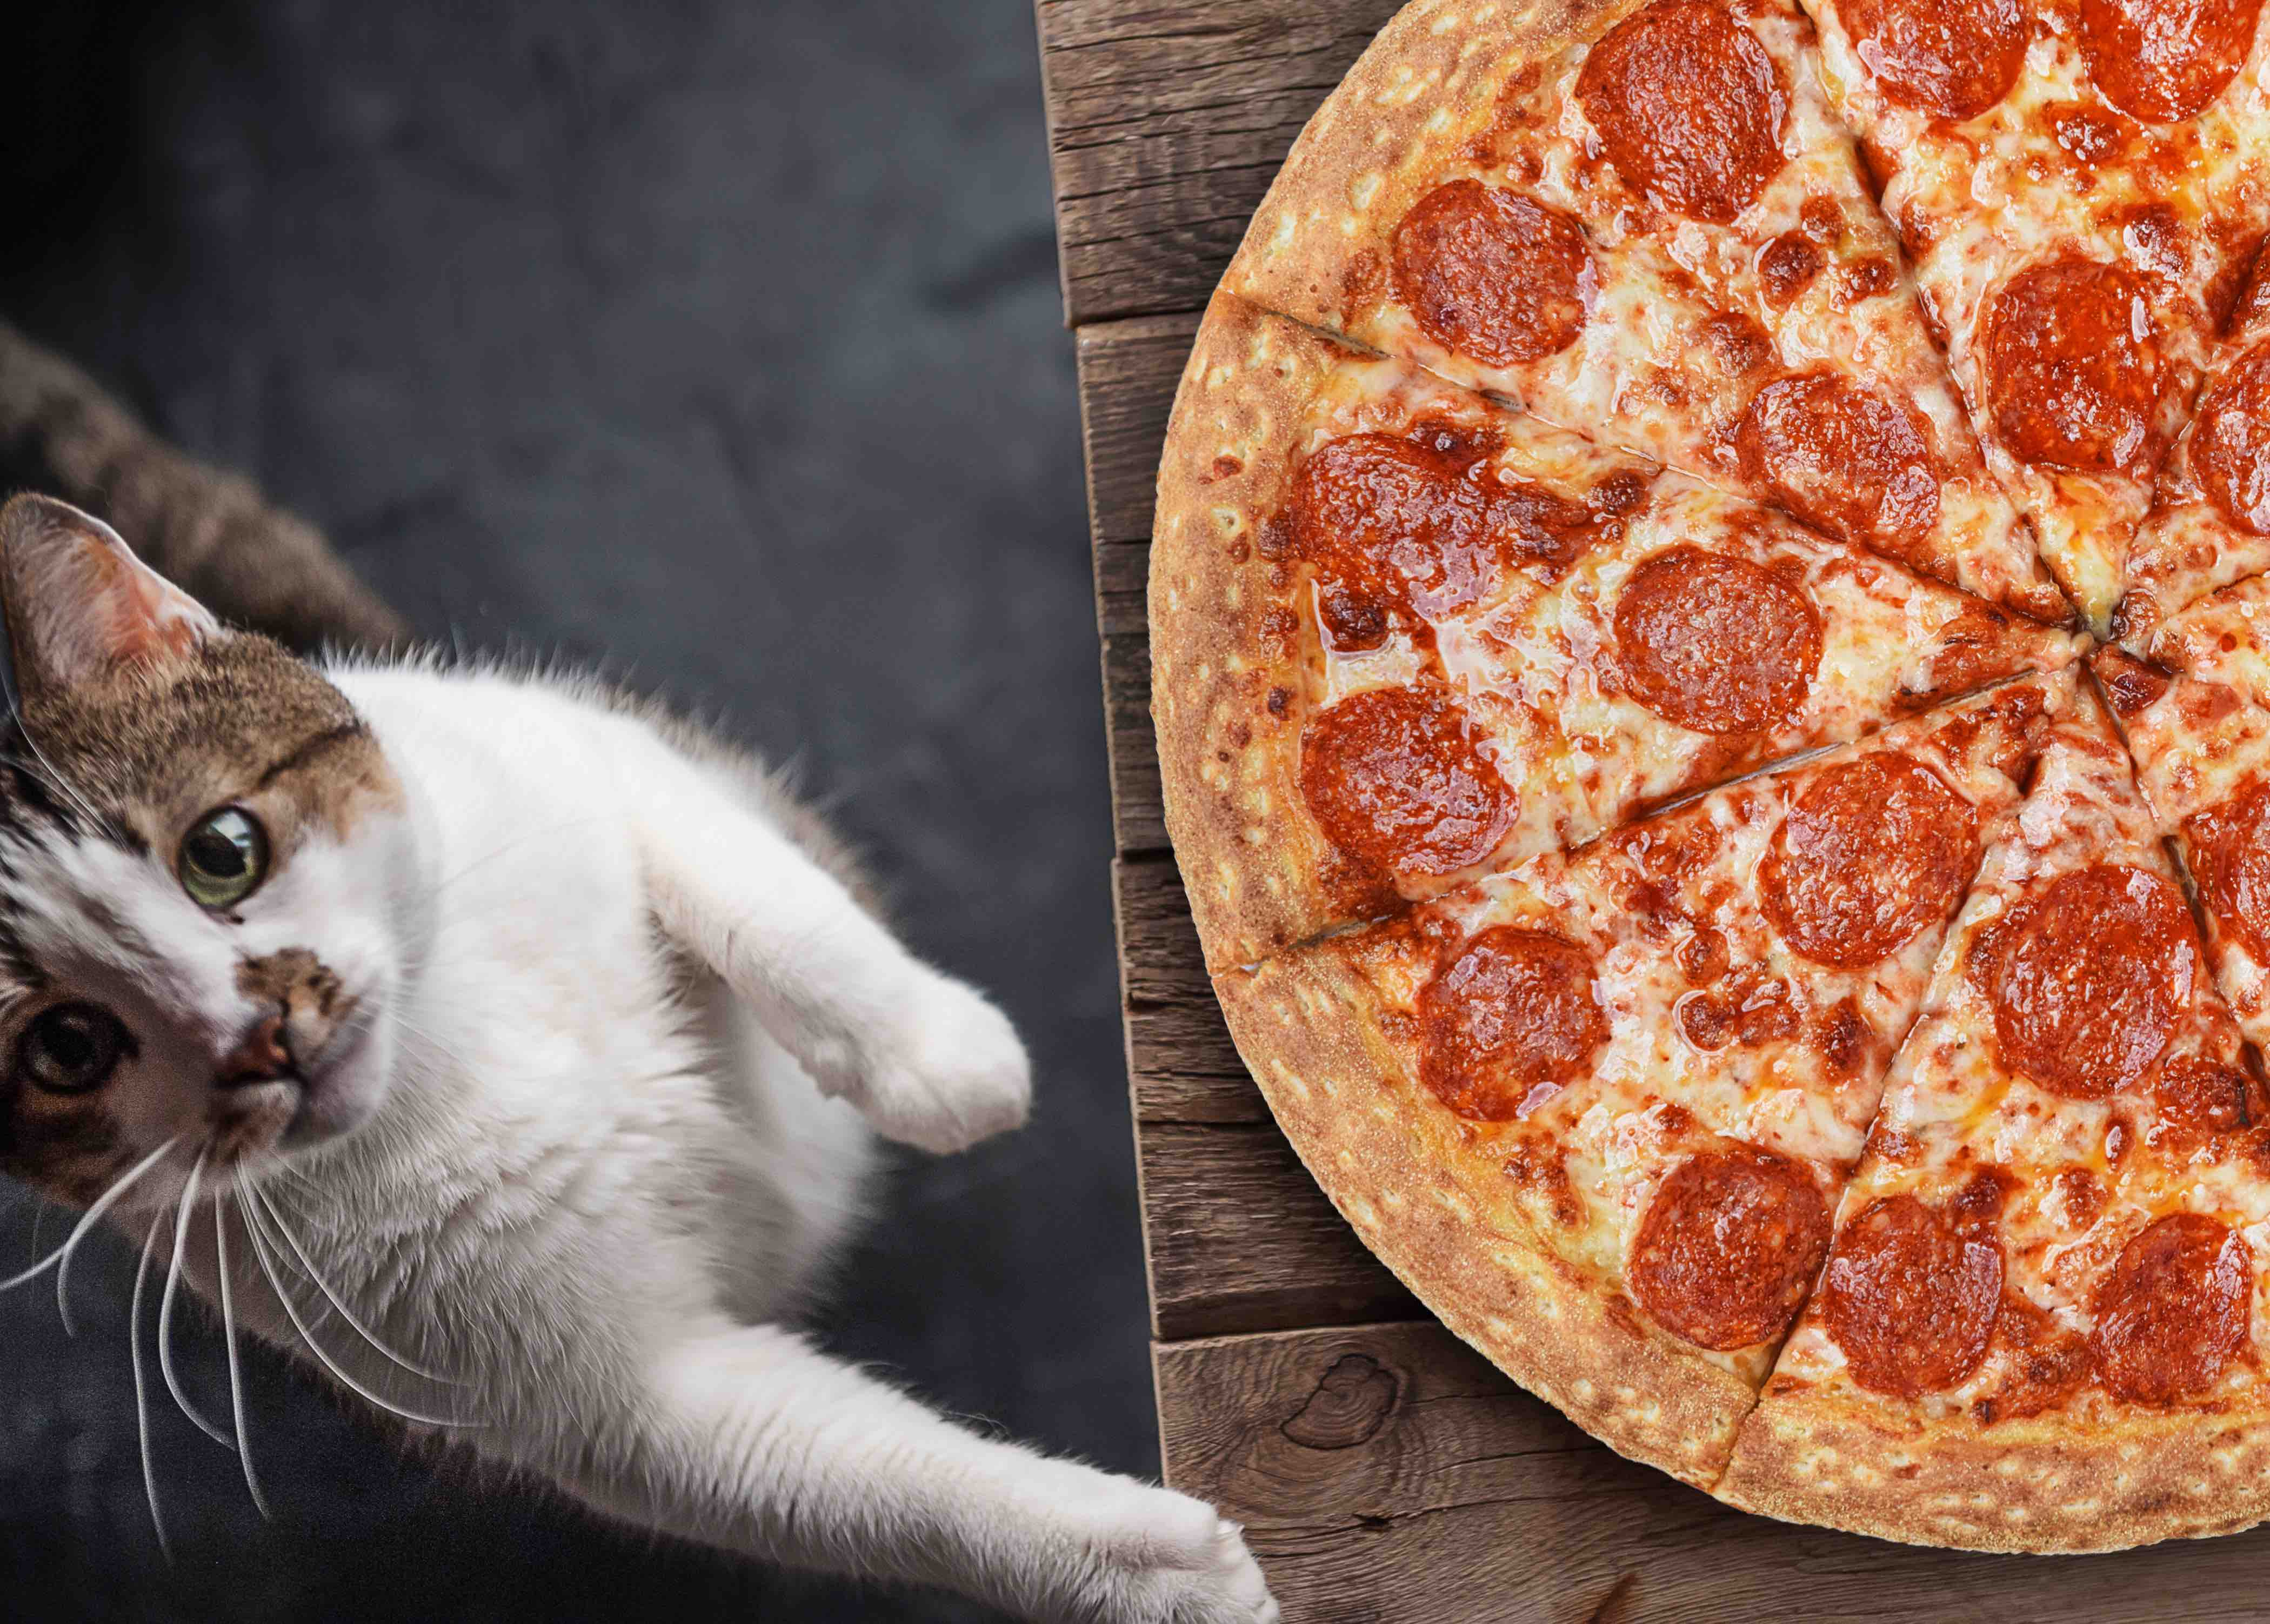 white cat wanting pizza